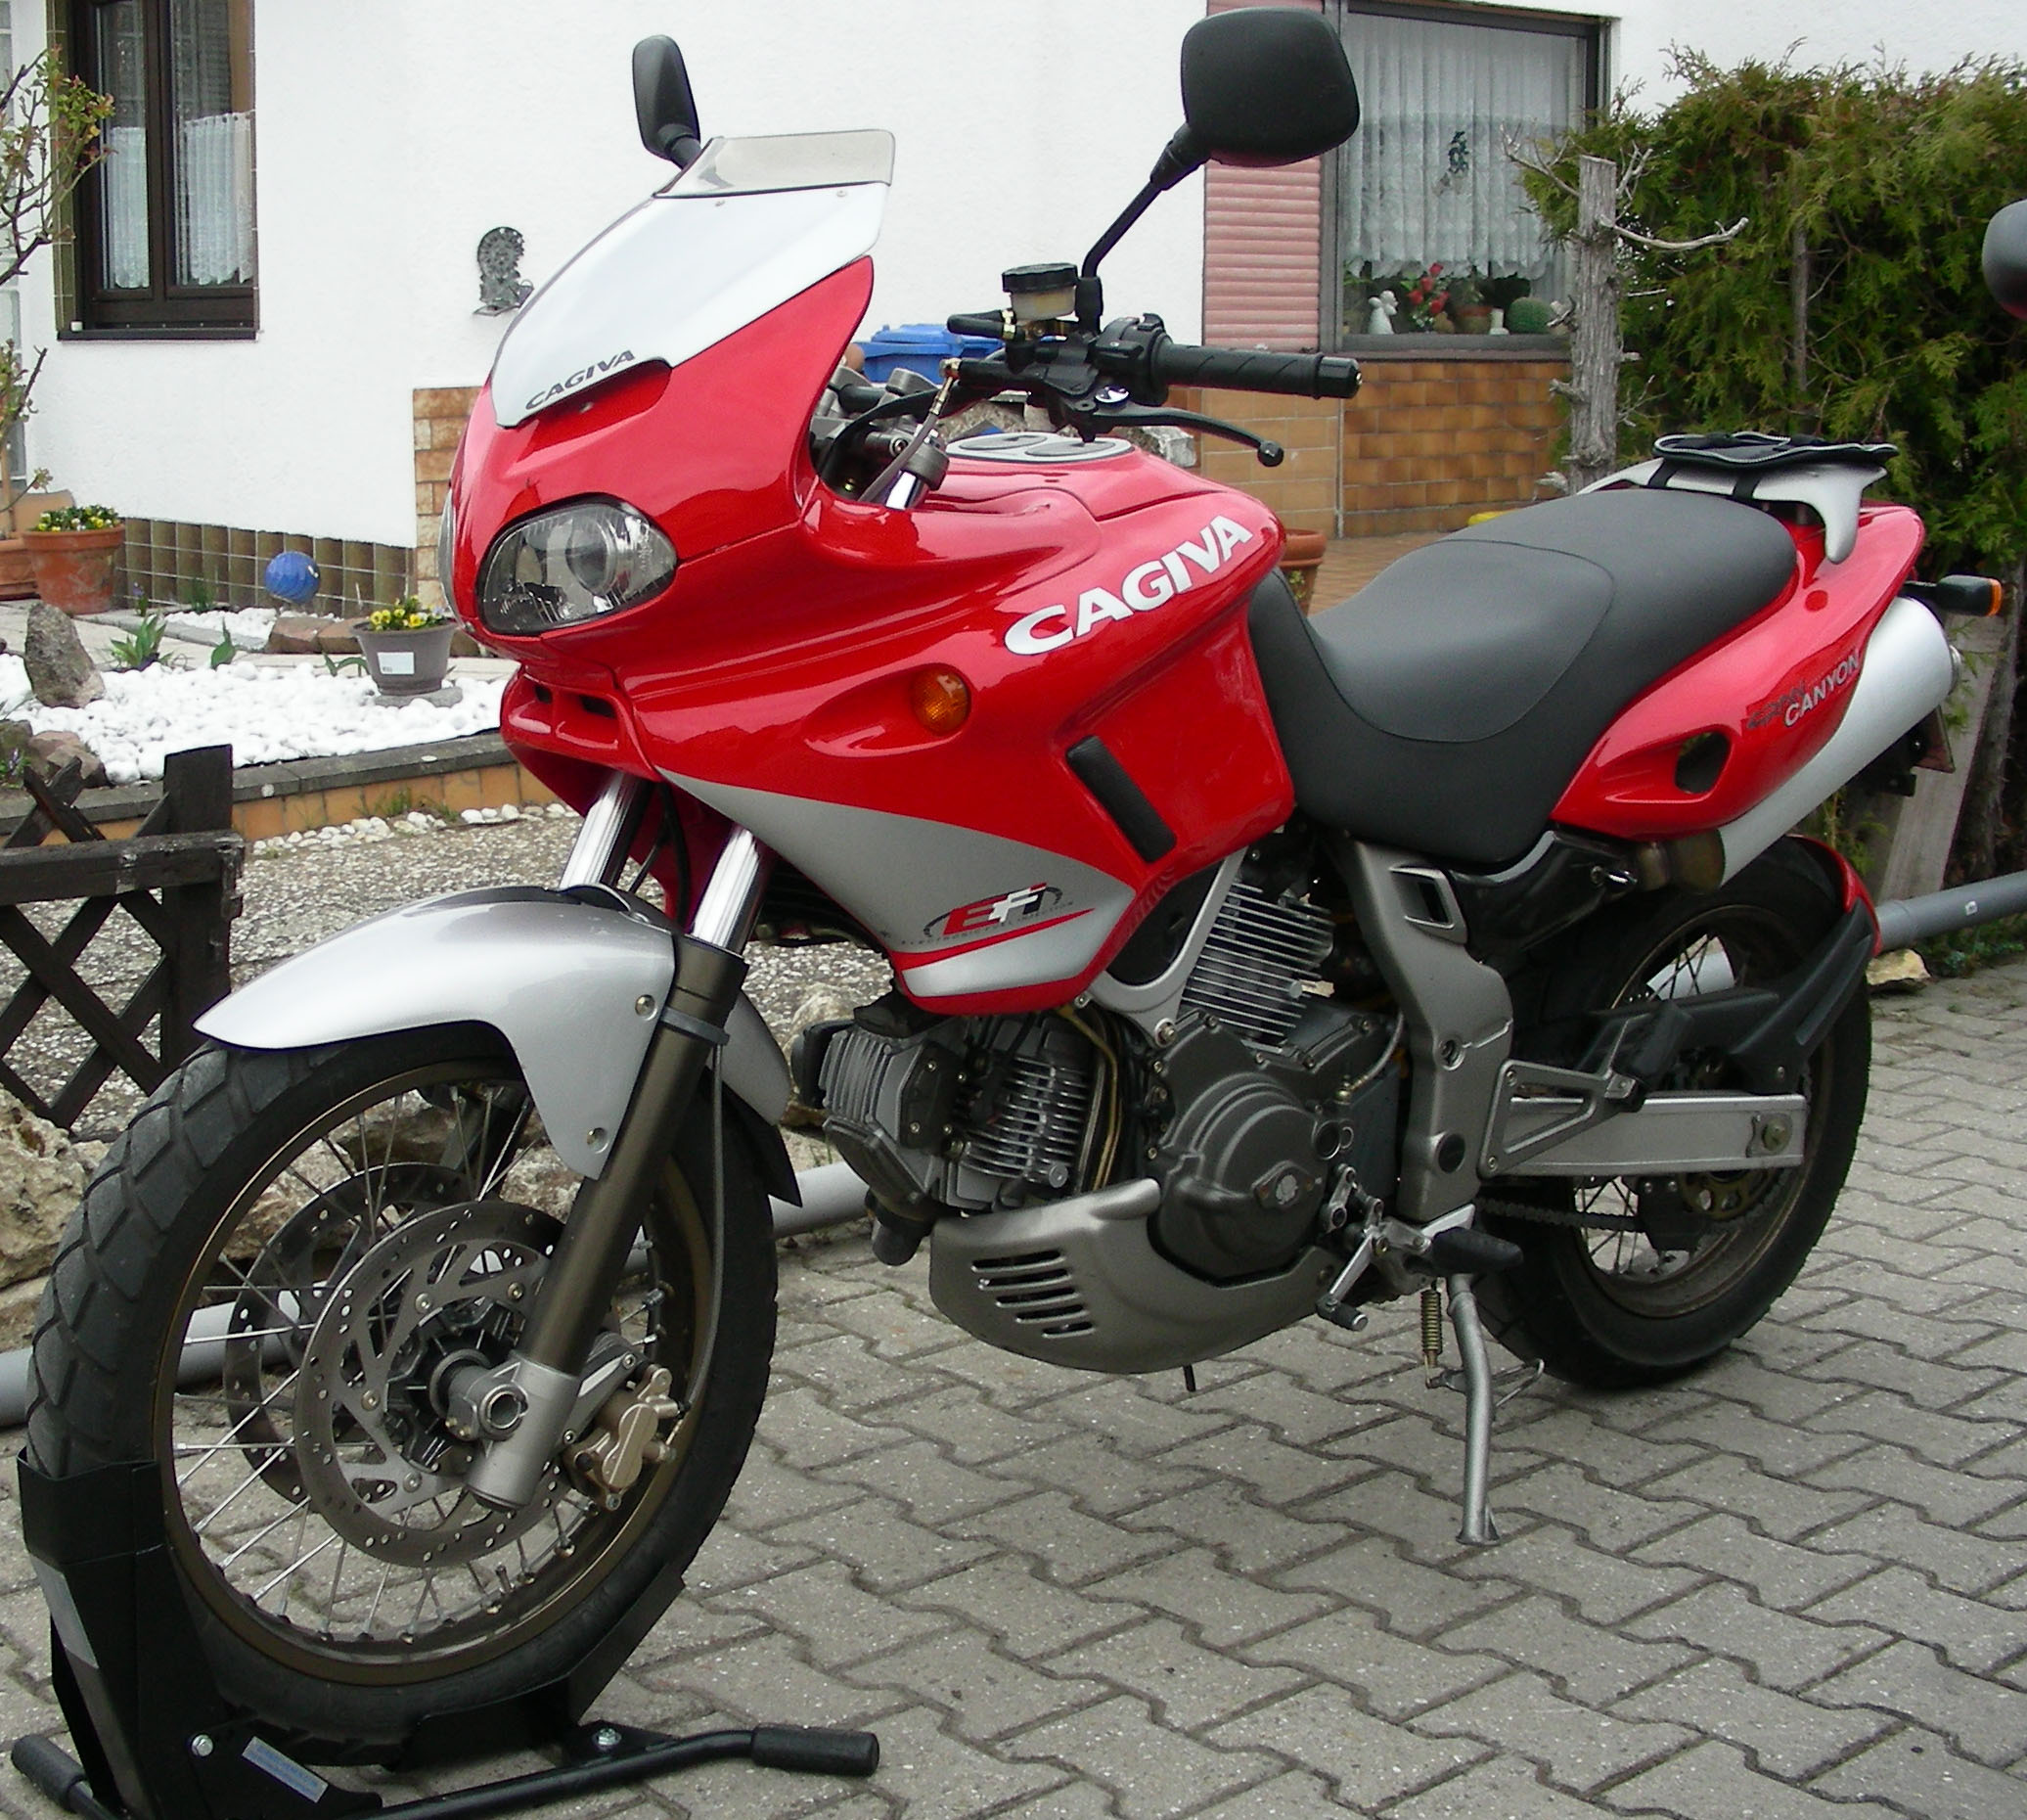 Cagiva Grand Canyon 1997 images #67282